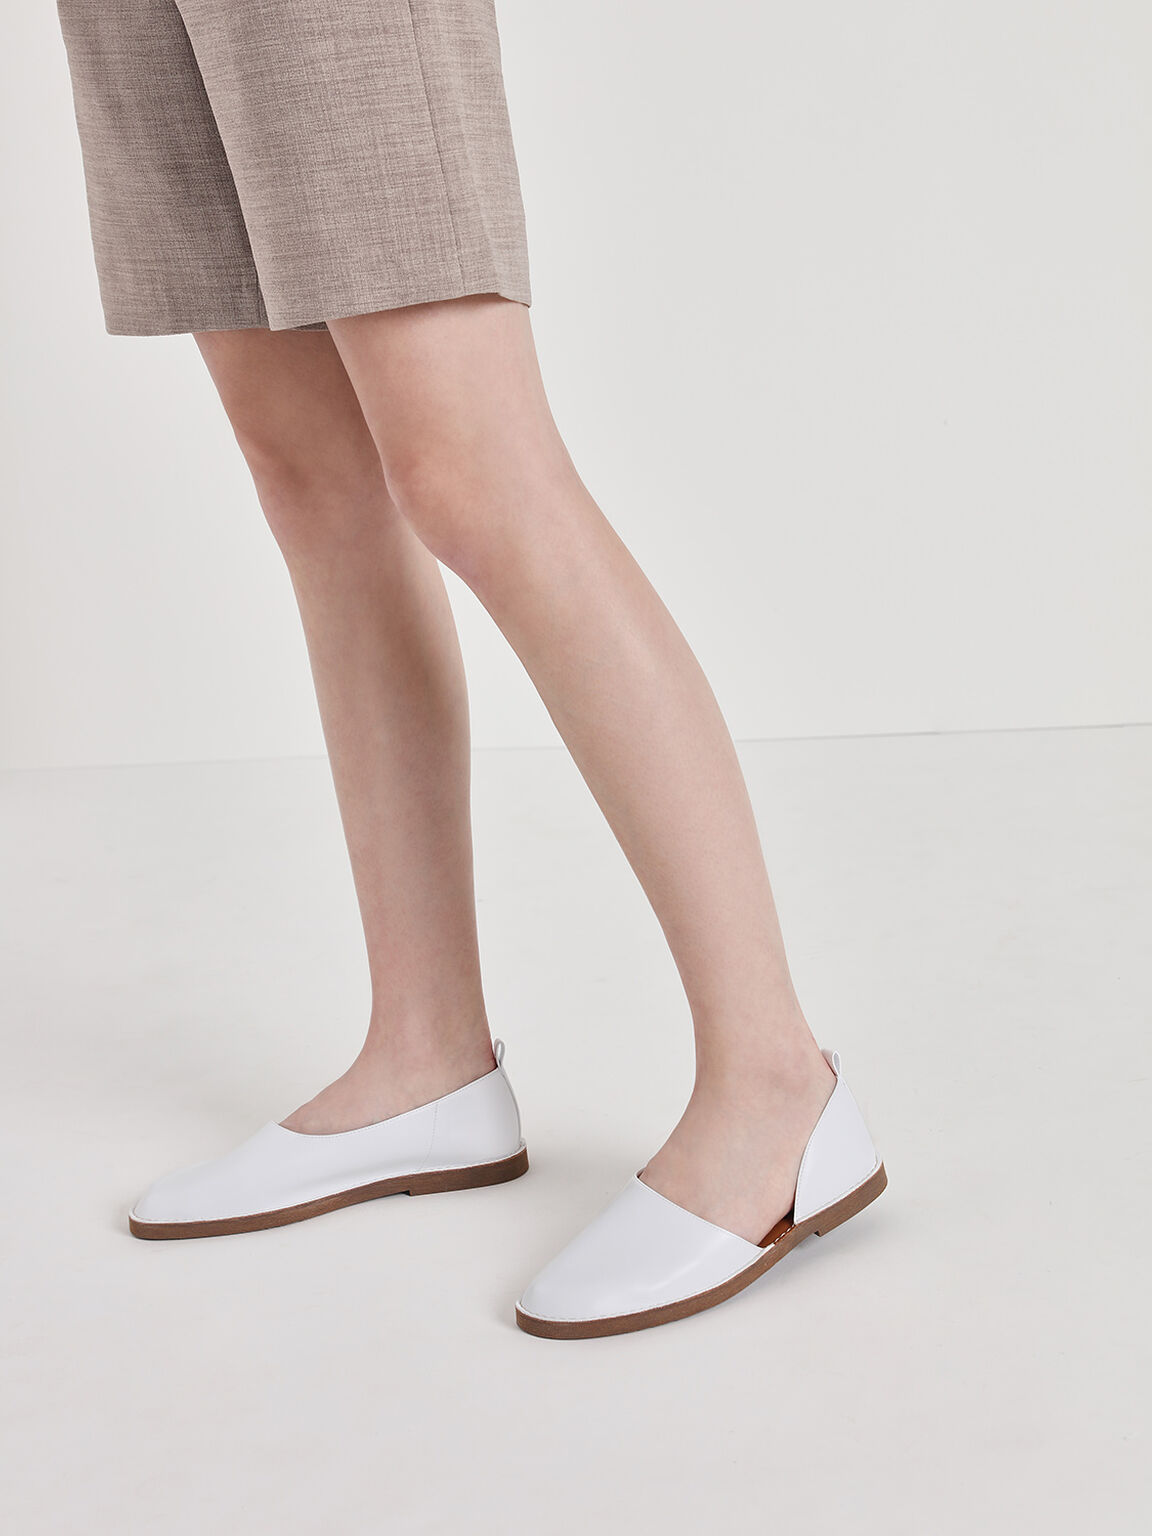 D'Orsay Loafers, White, hi-res